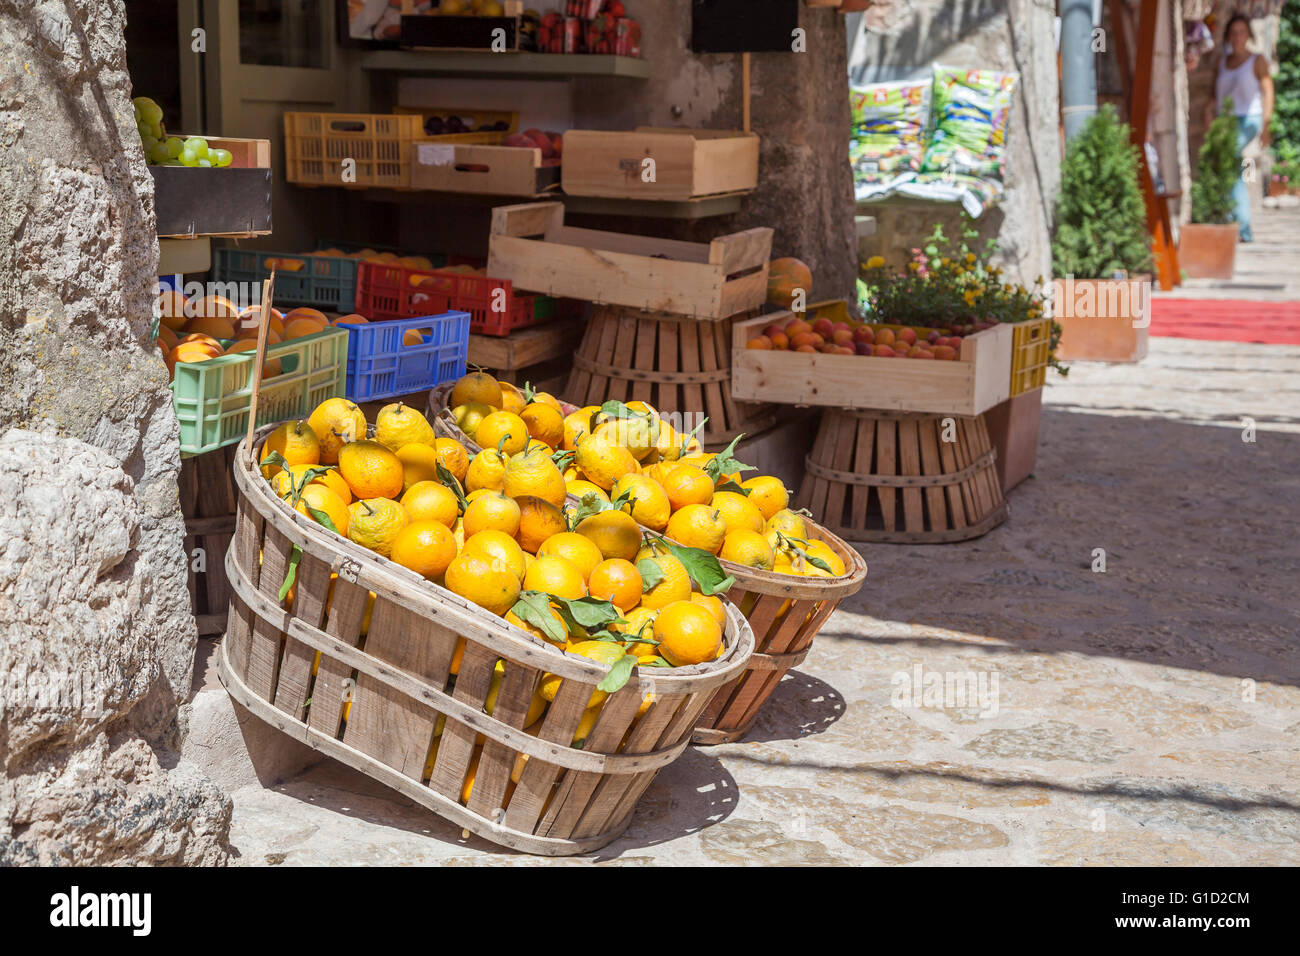 Boxes of lemons in a fruit shop in the village Valldemosa, Majorca island, Spain Stock Photo